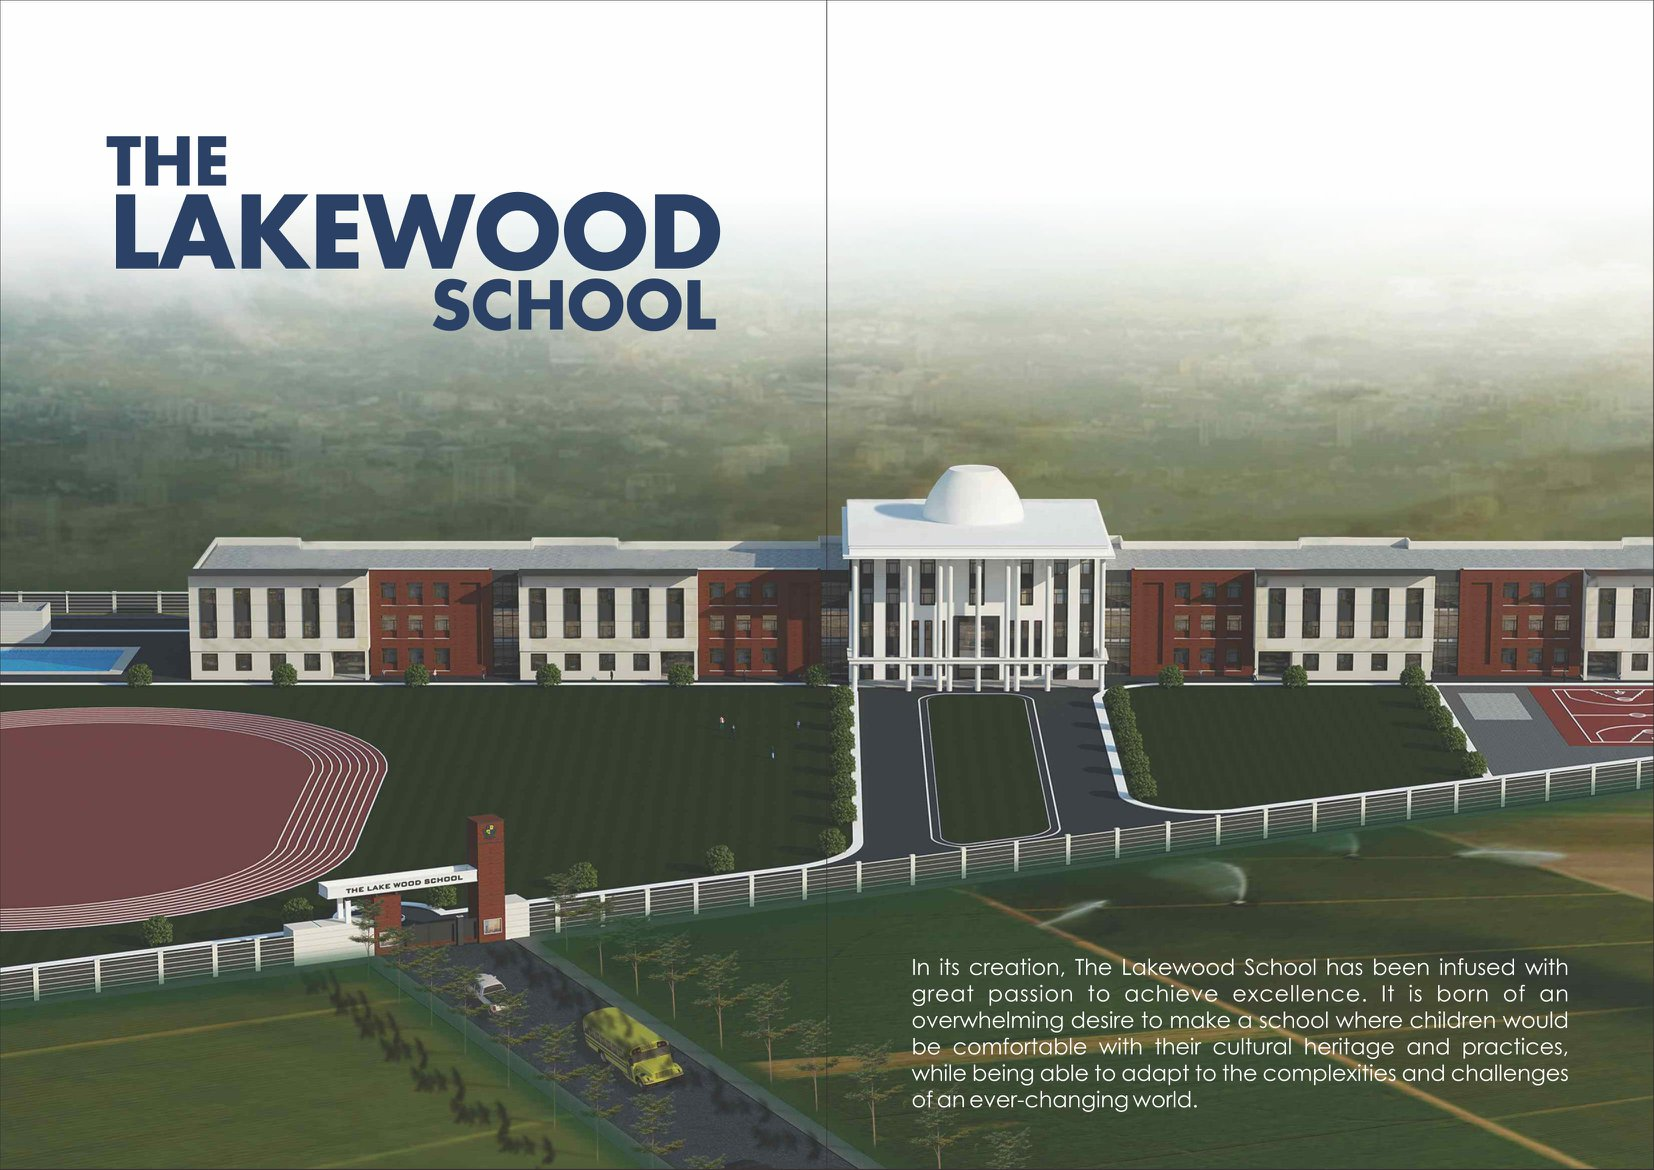 The Lakewood School